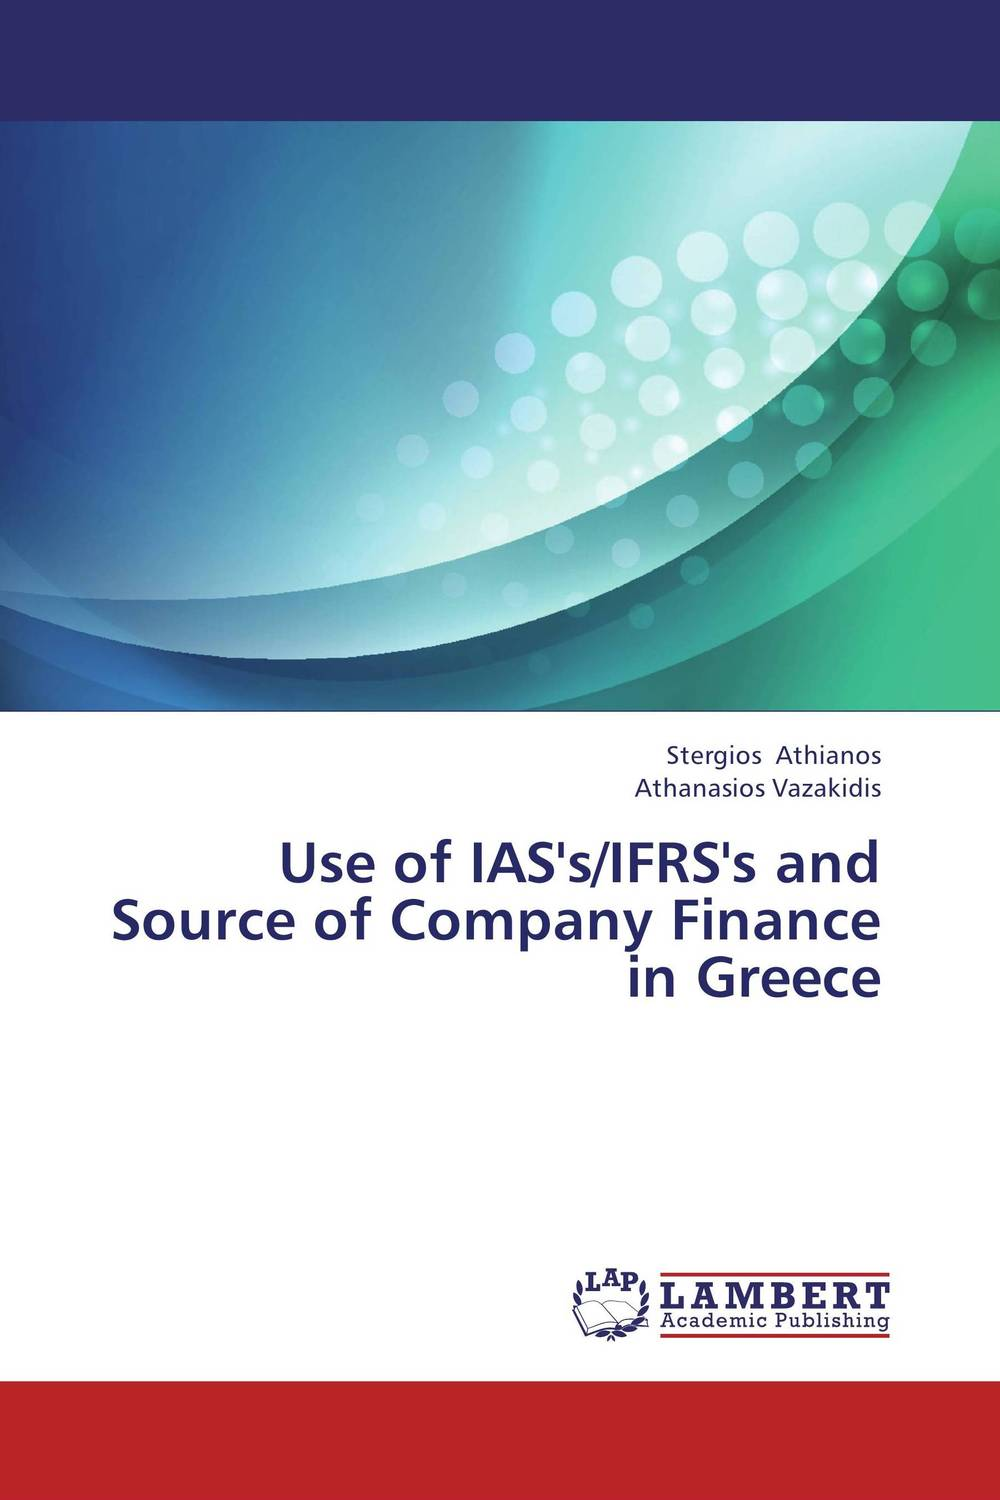 Фото Use of IAS's/IFRS's and Source of Company Finance in Greece finance and investments